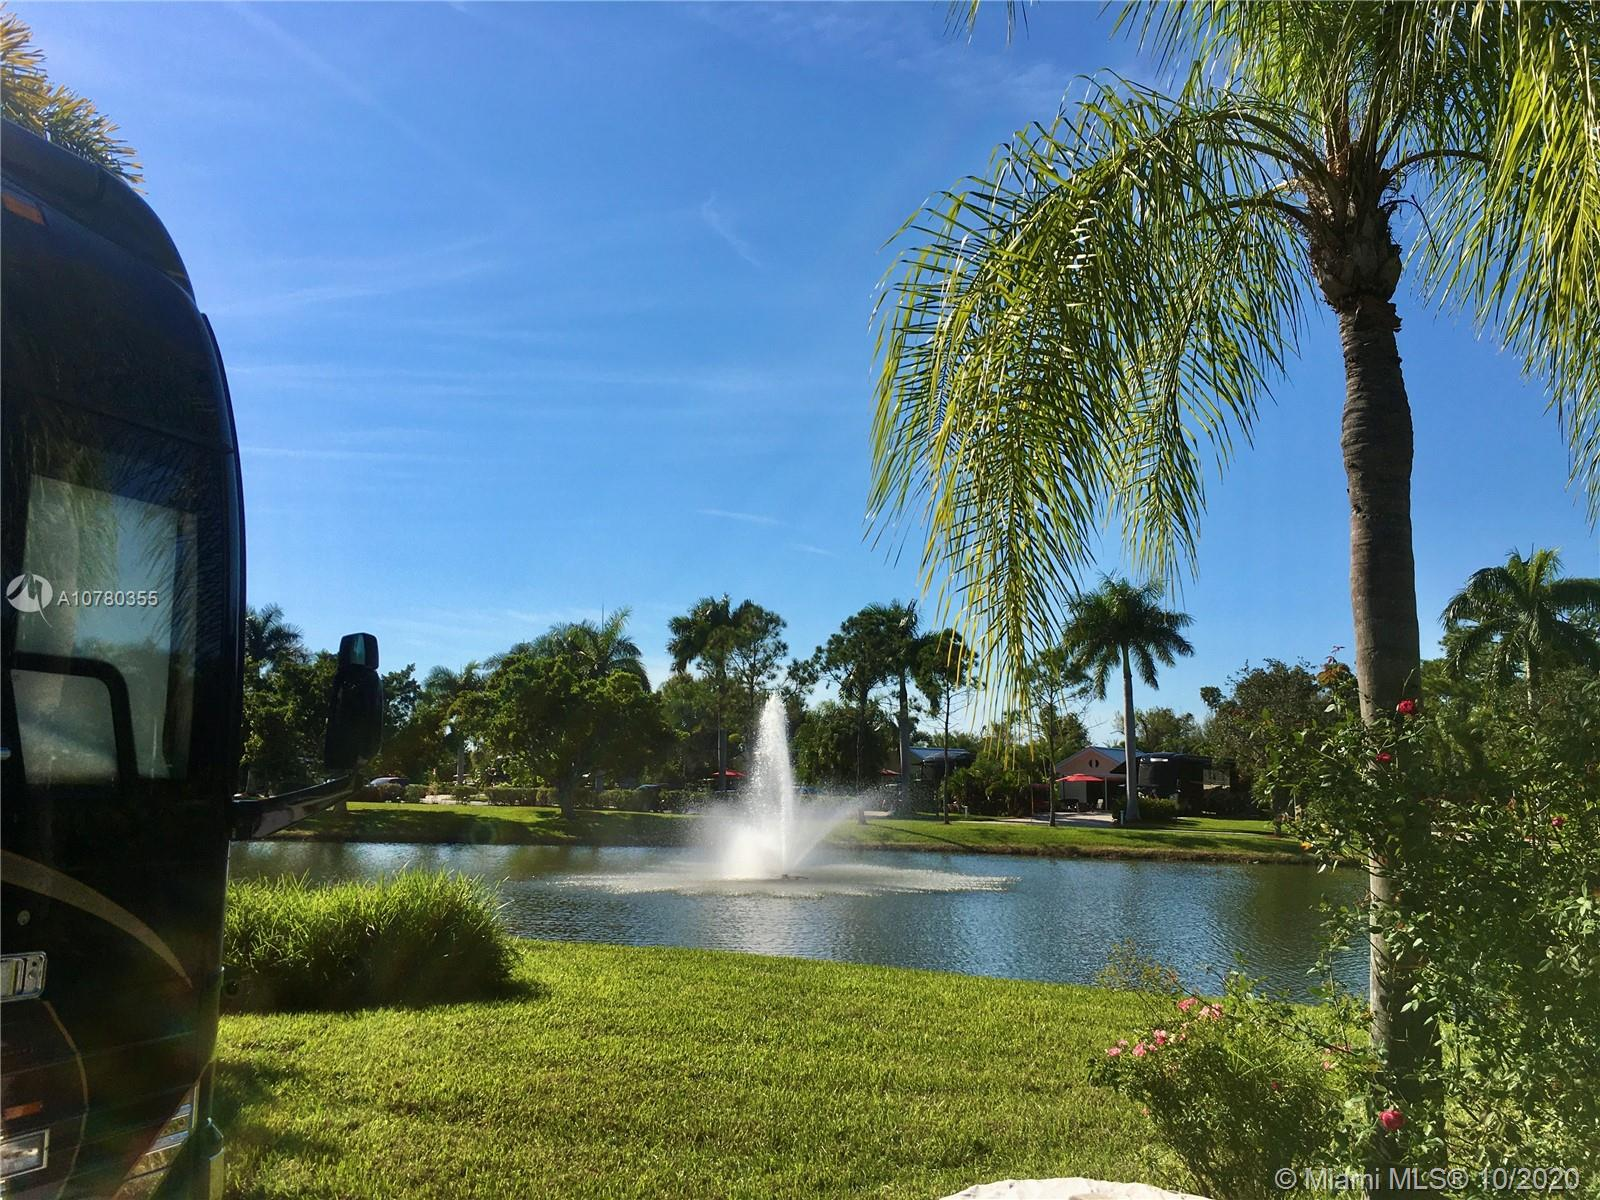 3035 E RiverBend Resort Blvd, Other City - In The State Of Florida, Florida 33935, ,Land/boat Docks,For Sale,3035 E RiverBend Resort Blvd,A10780355